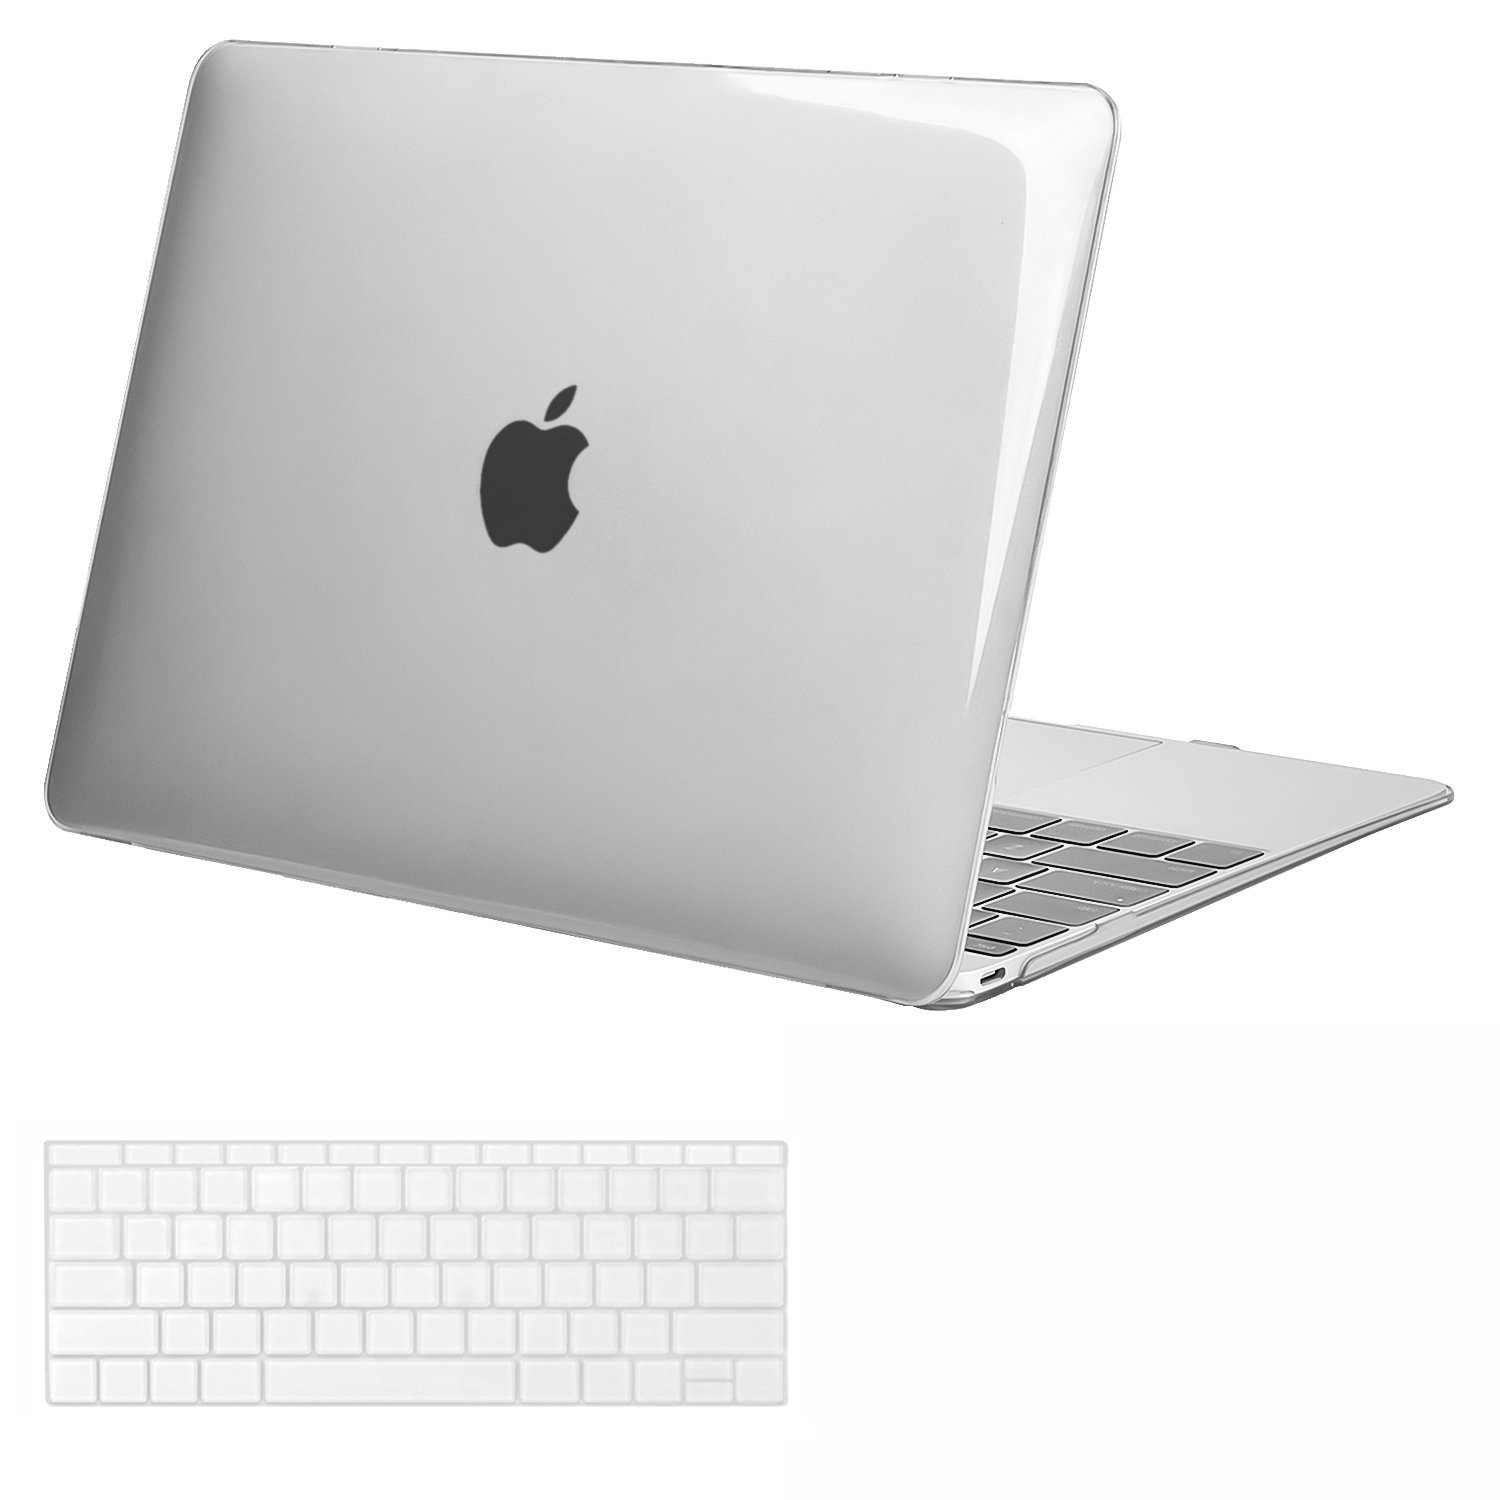 MOSISO Plastic Hard Shell Case & Keyboard Cover Compatible MacBook 12 Inch Retina Display Model A1534 (Newest Version 2017/2016/2015), Crystal Clear